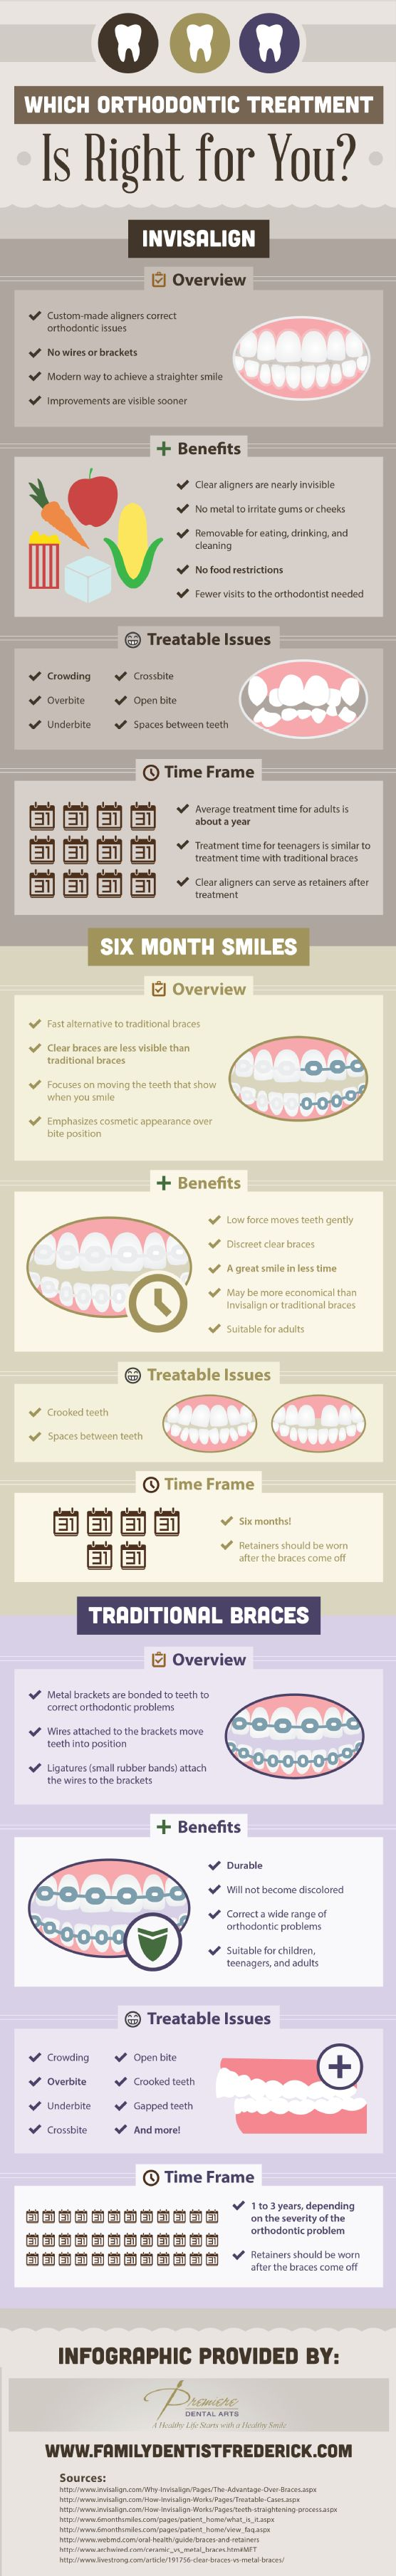 Here are a few options to consider if you are thinking about improving your smile! Any questions? Feel free to drop by Aubert and Nguyen Orthodontics in Sunnyvale, CA.